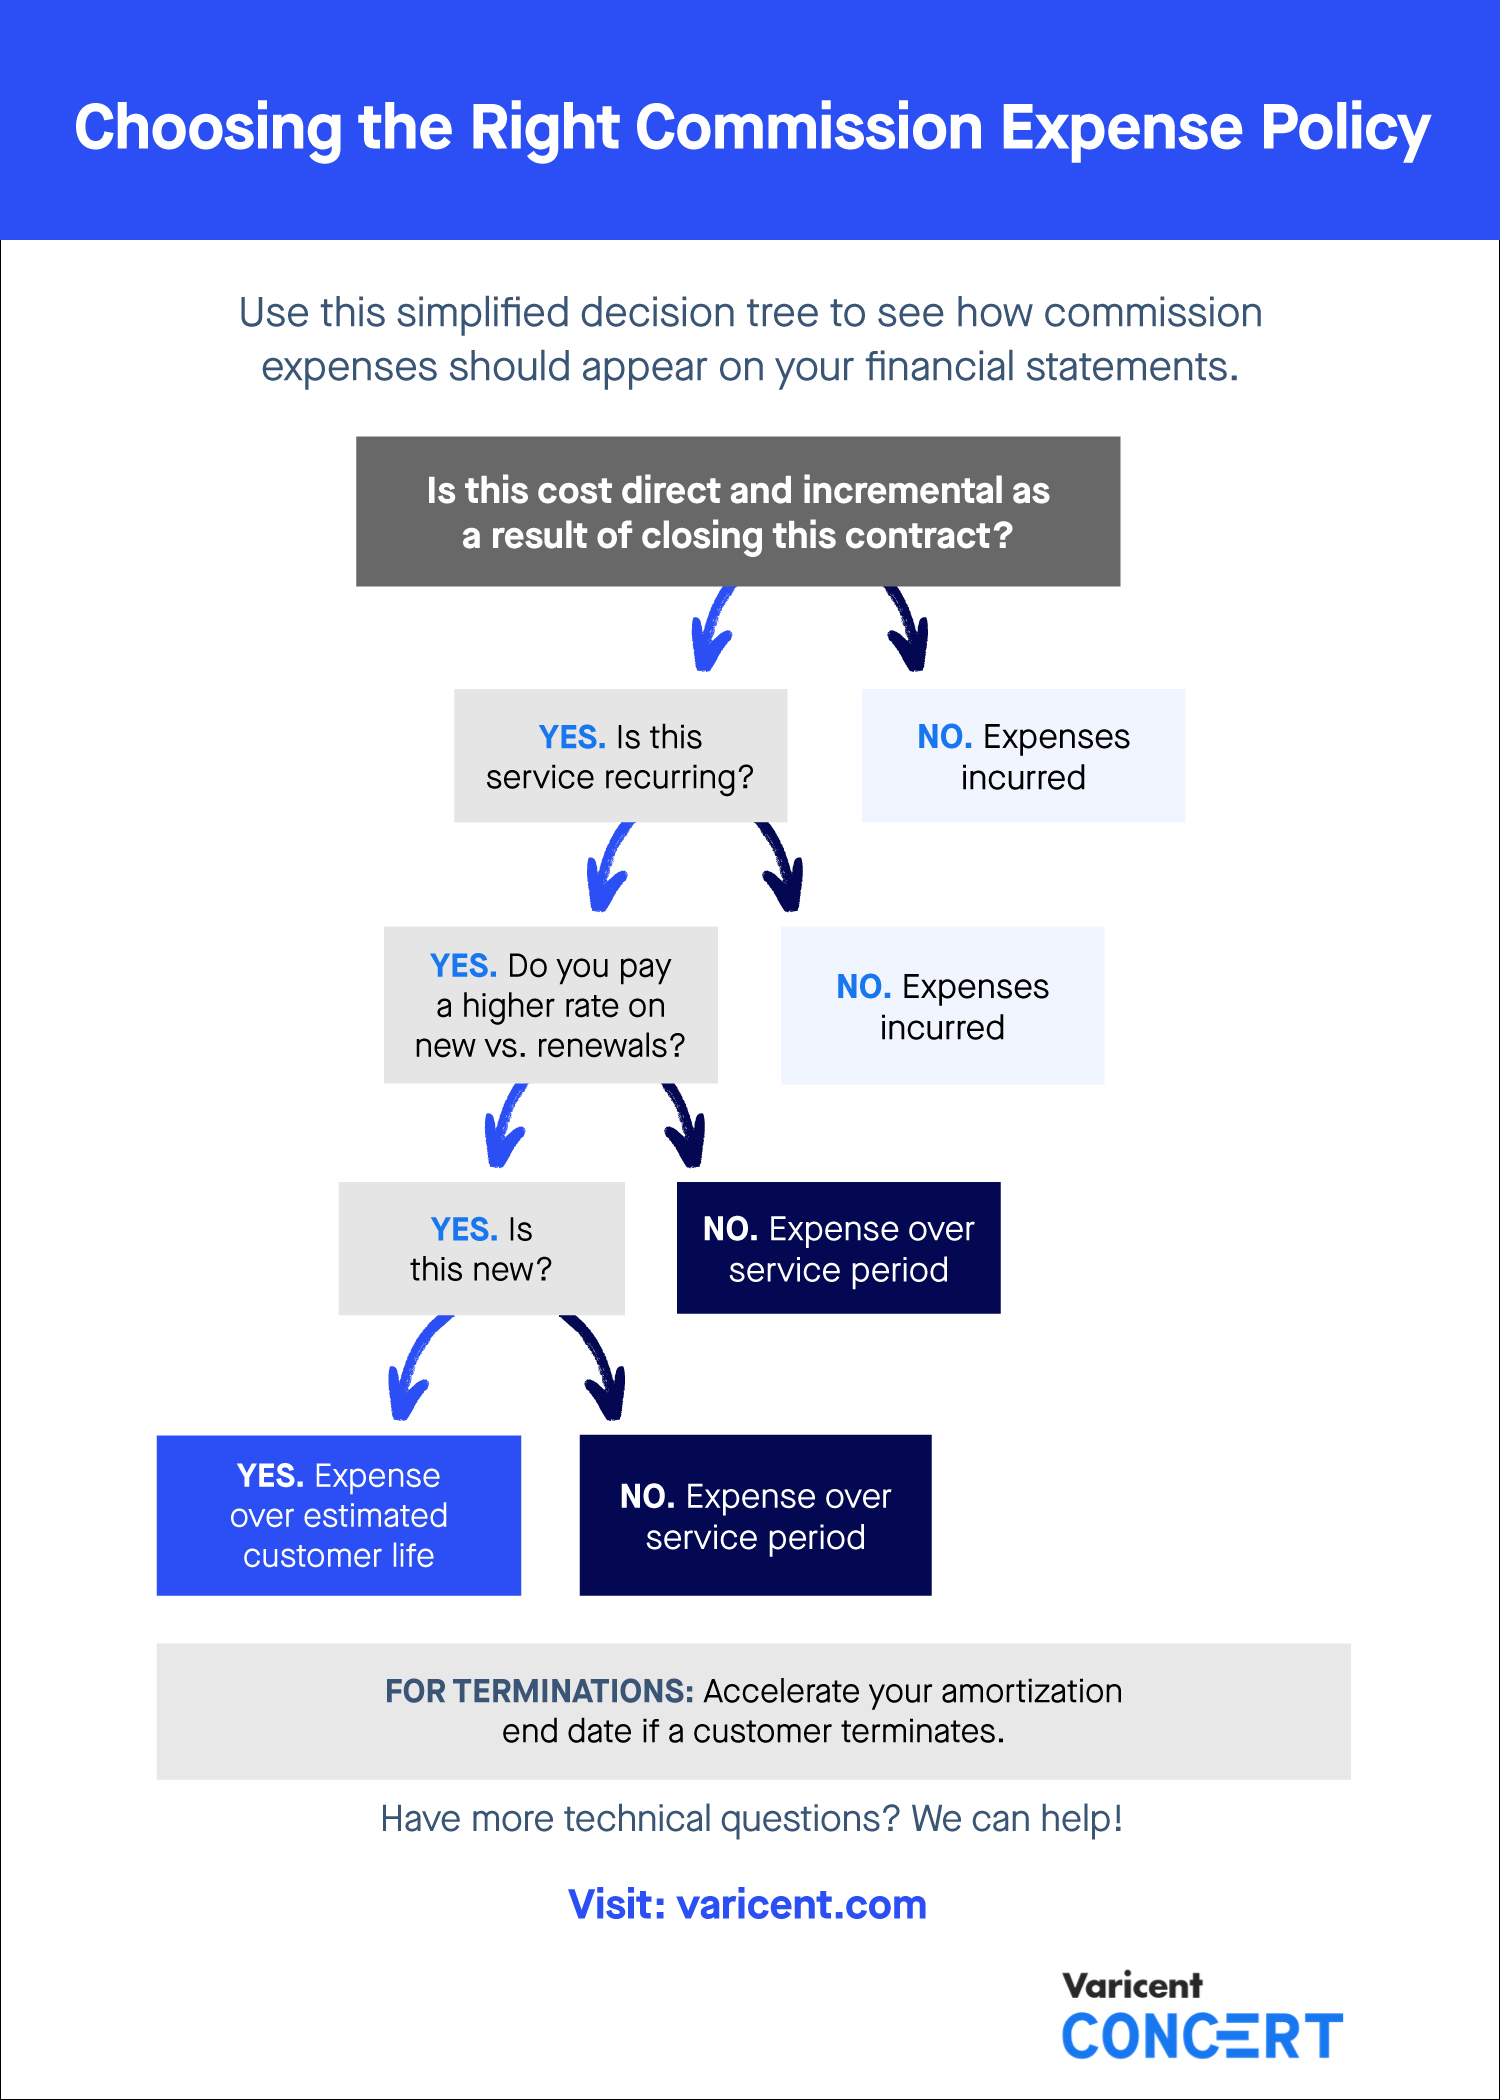 Commission Expense Policy Decision Tree